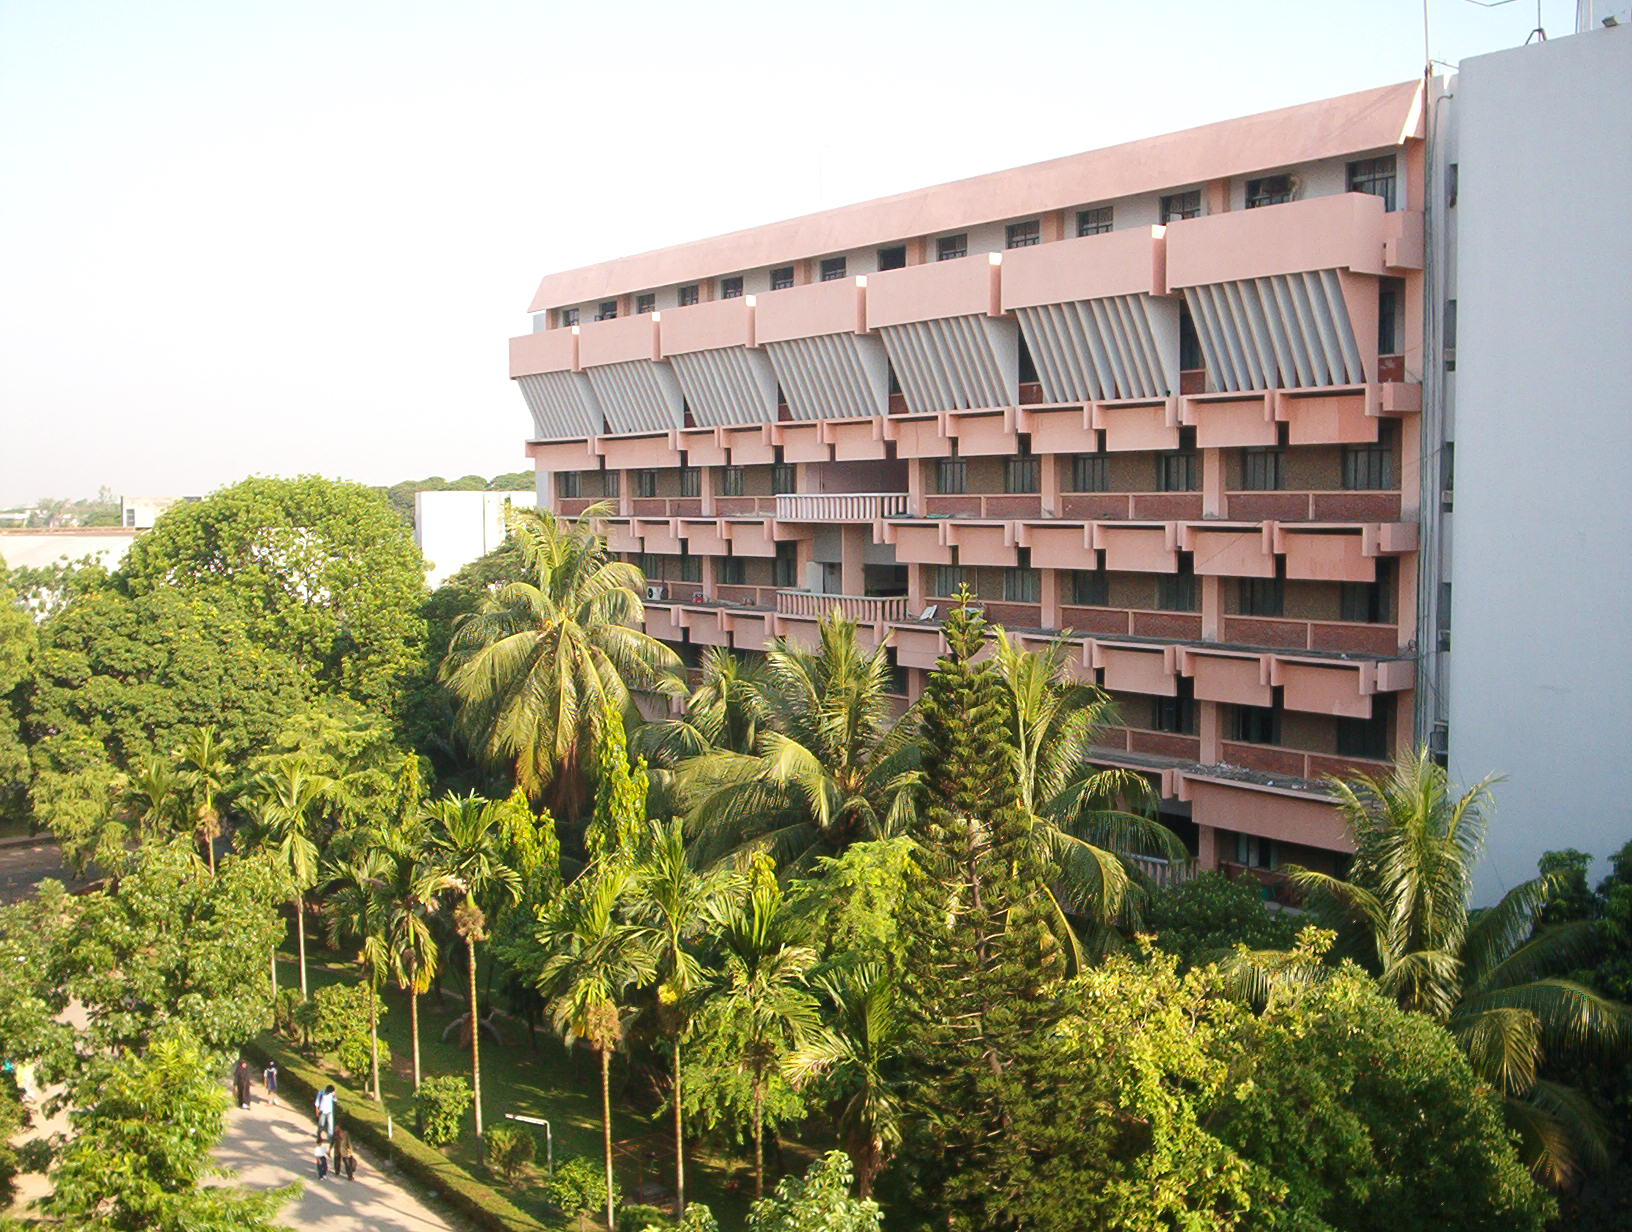 BUET closed for indefinite period